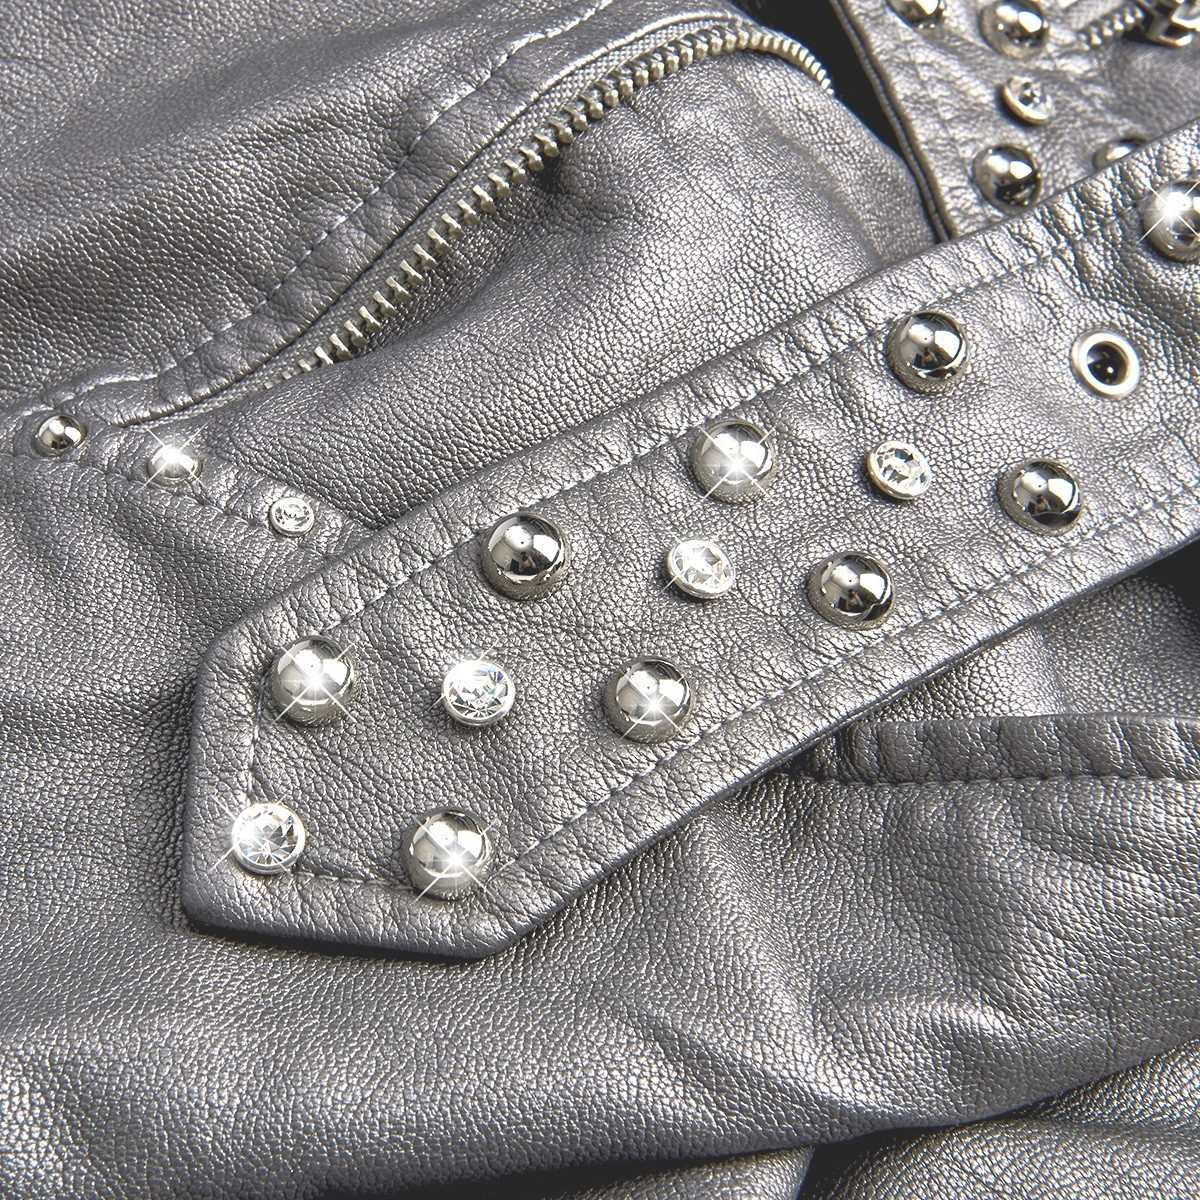 8639c07da2f1 ... Women s eco-leather jacket with patches and crystals ...